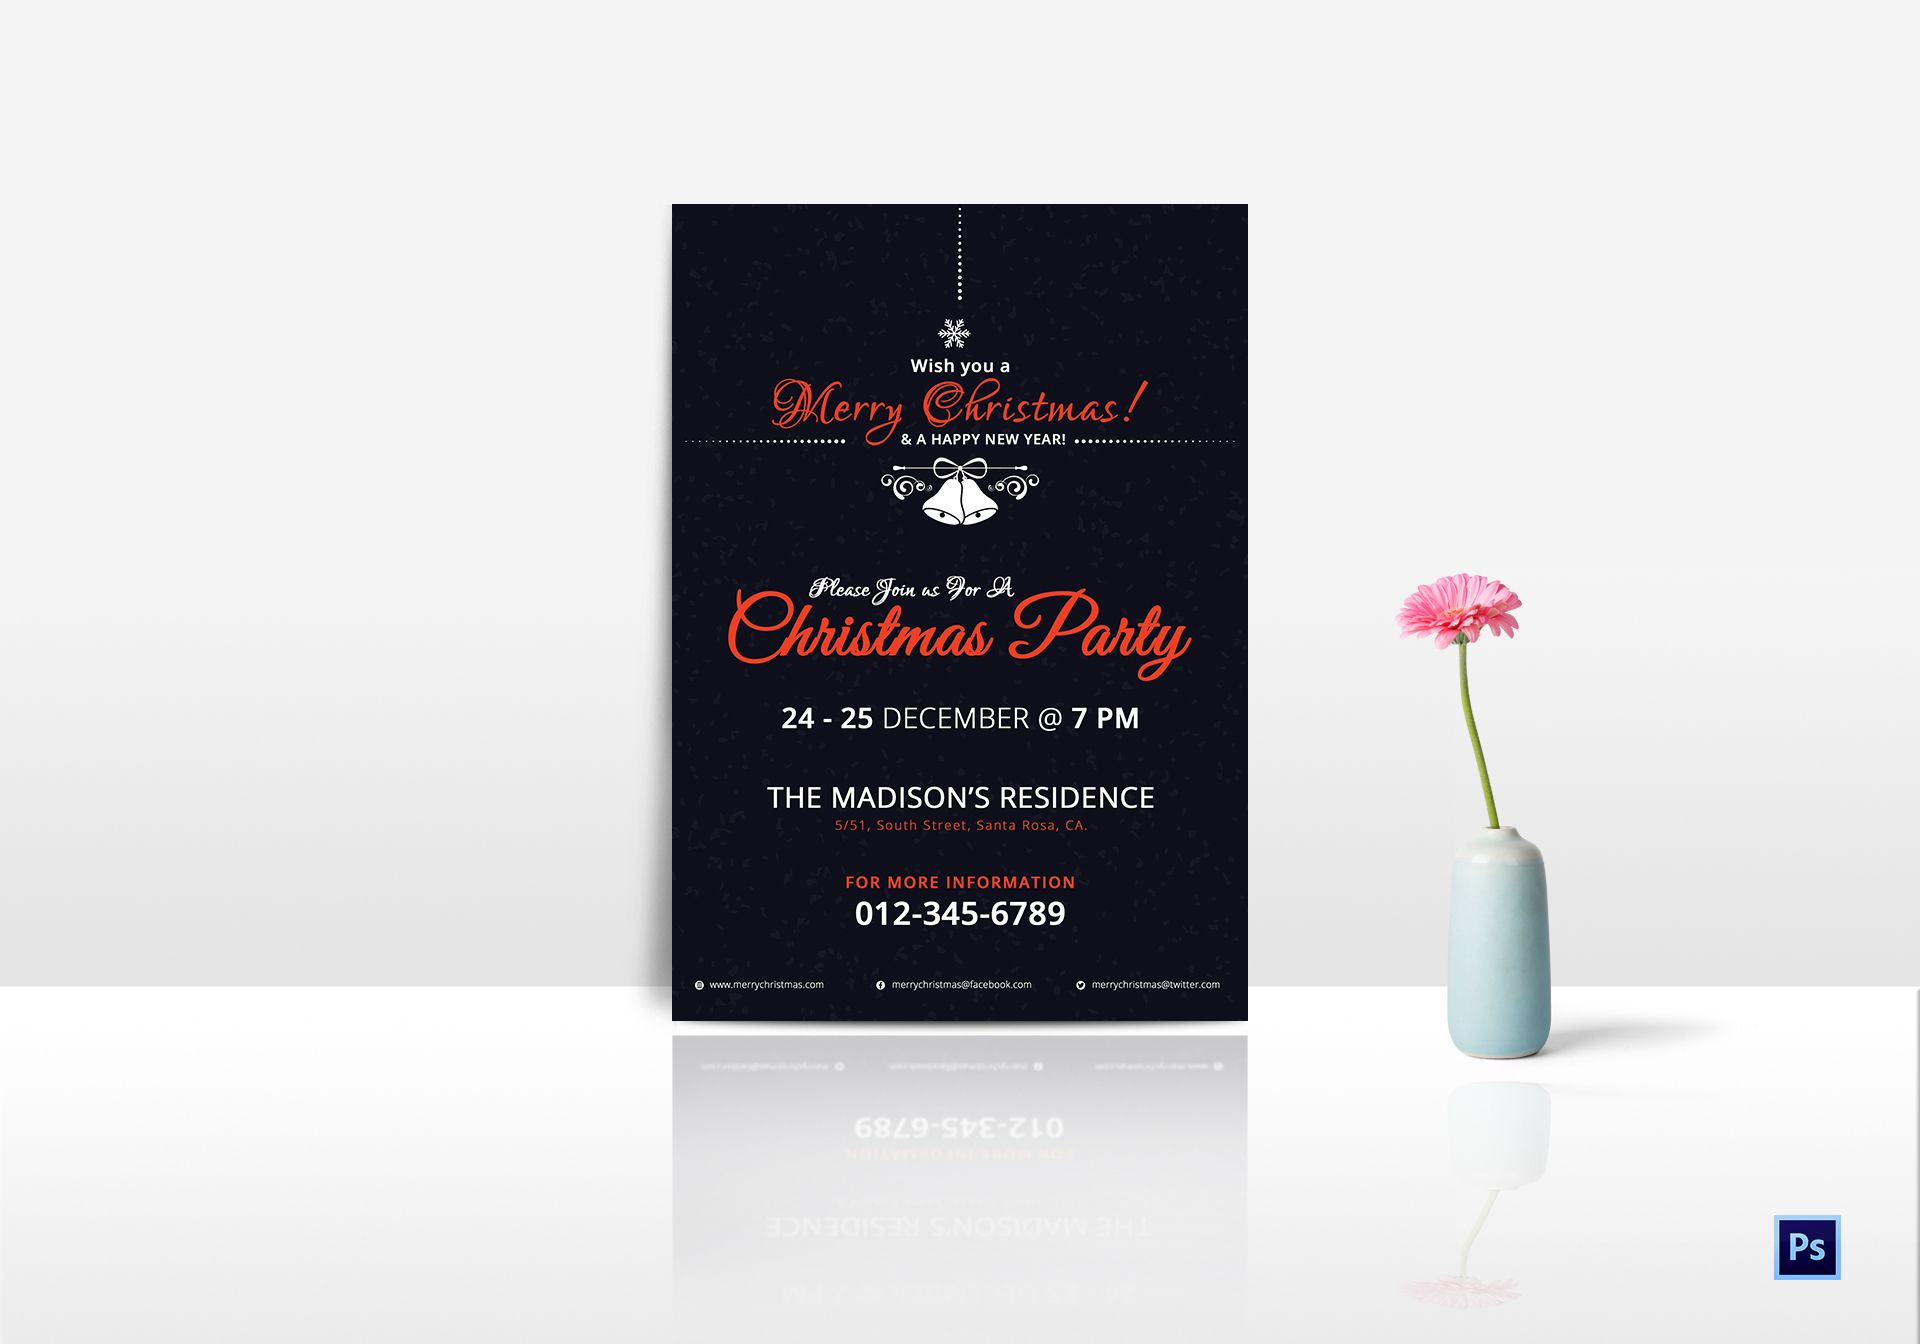 Invitation for Christmas Party Template